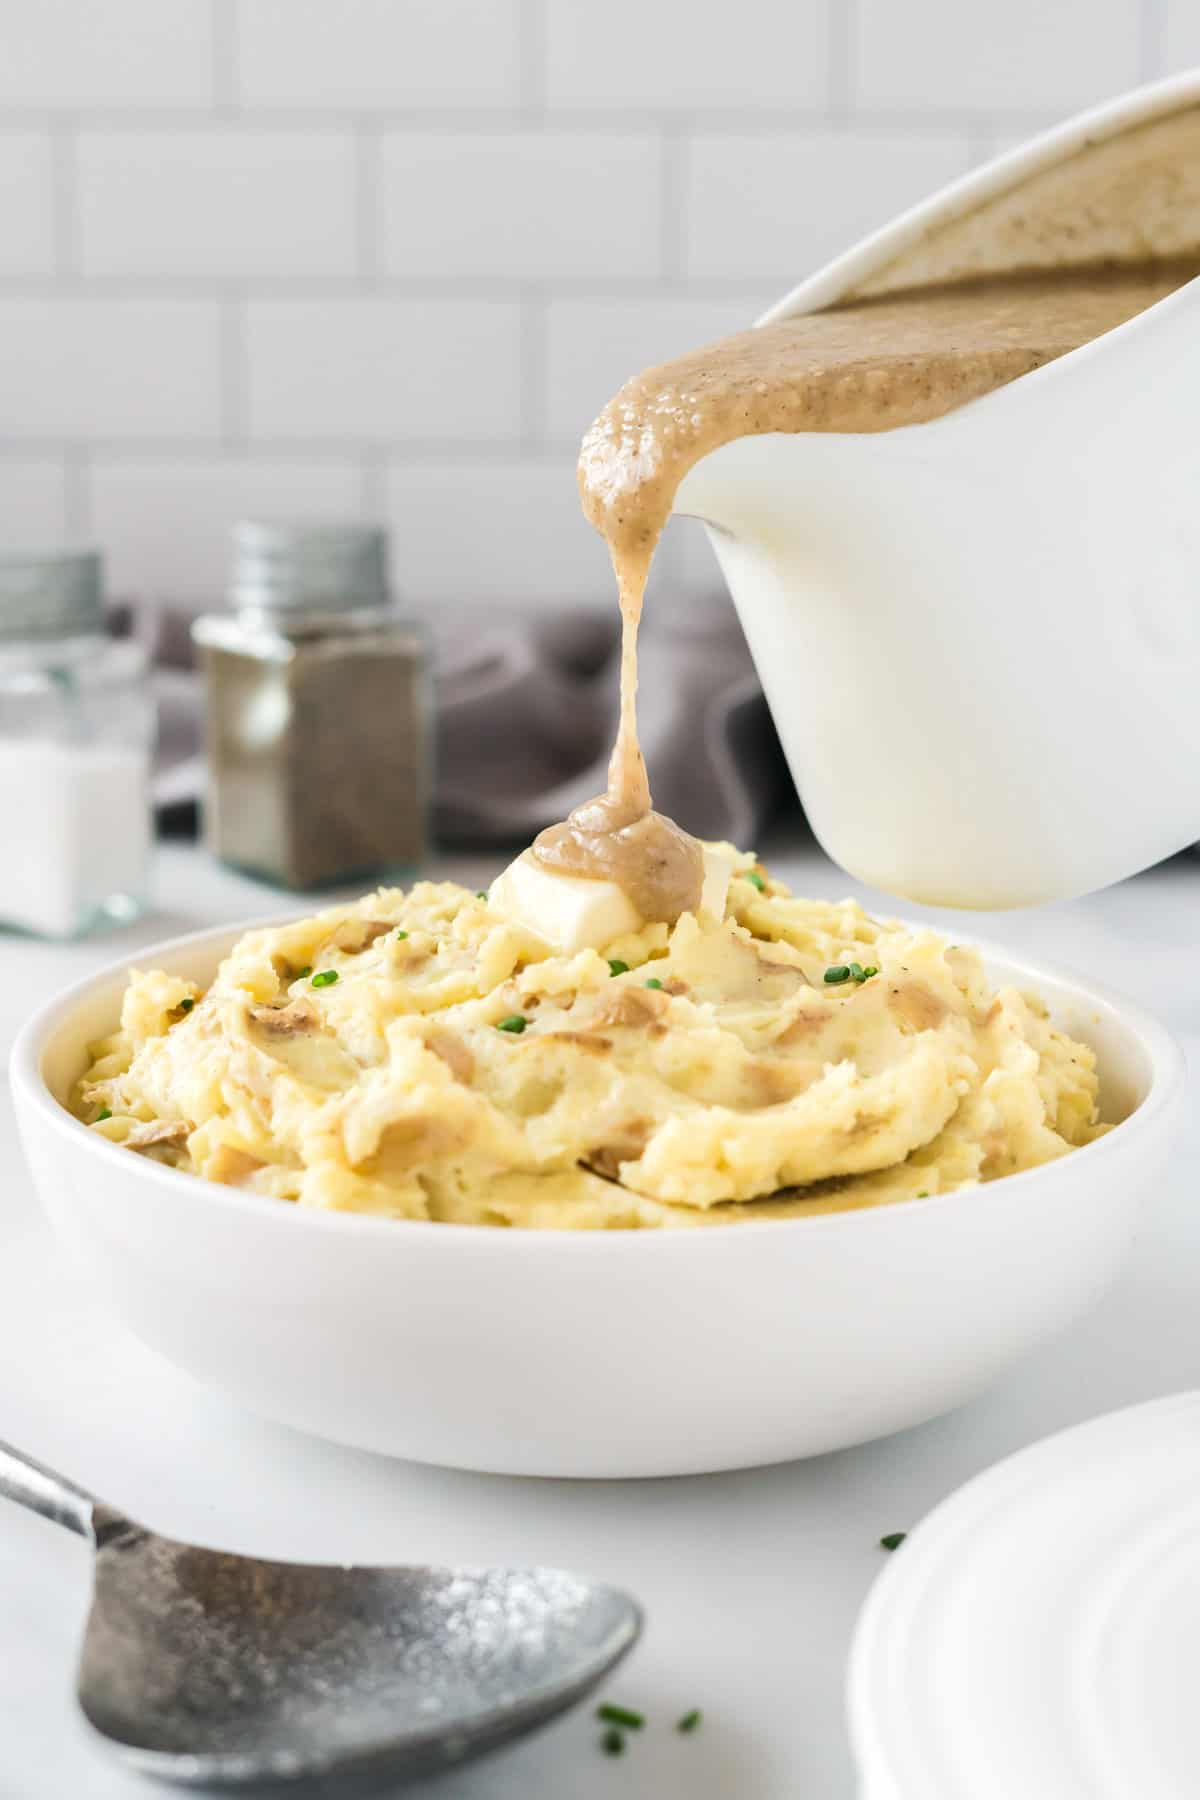 gravy being poured onto sour cream mashed potatoes